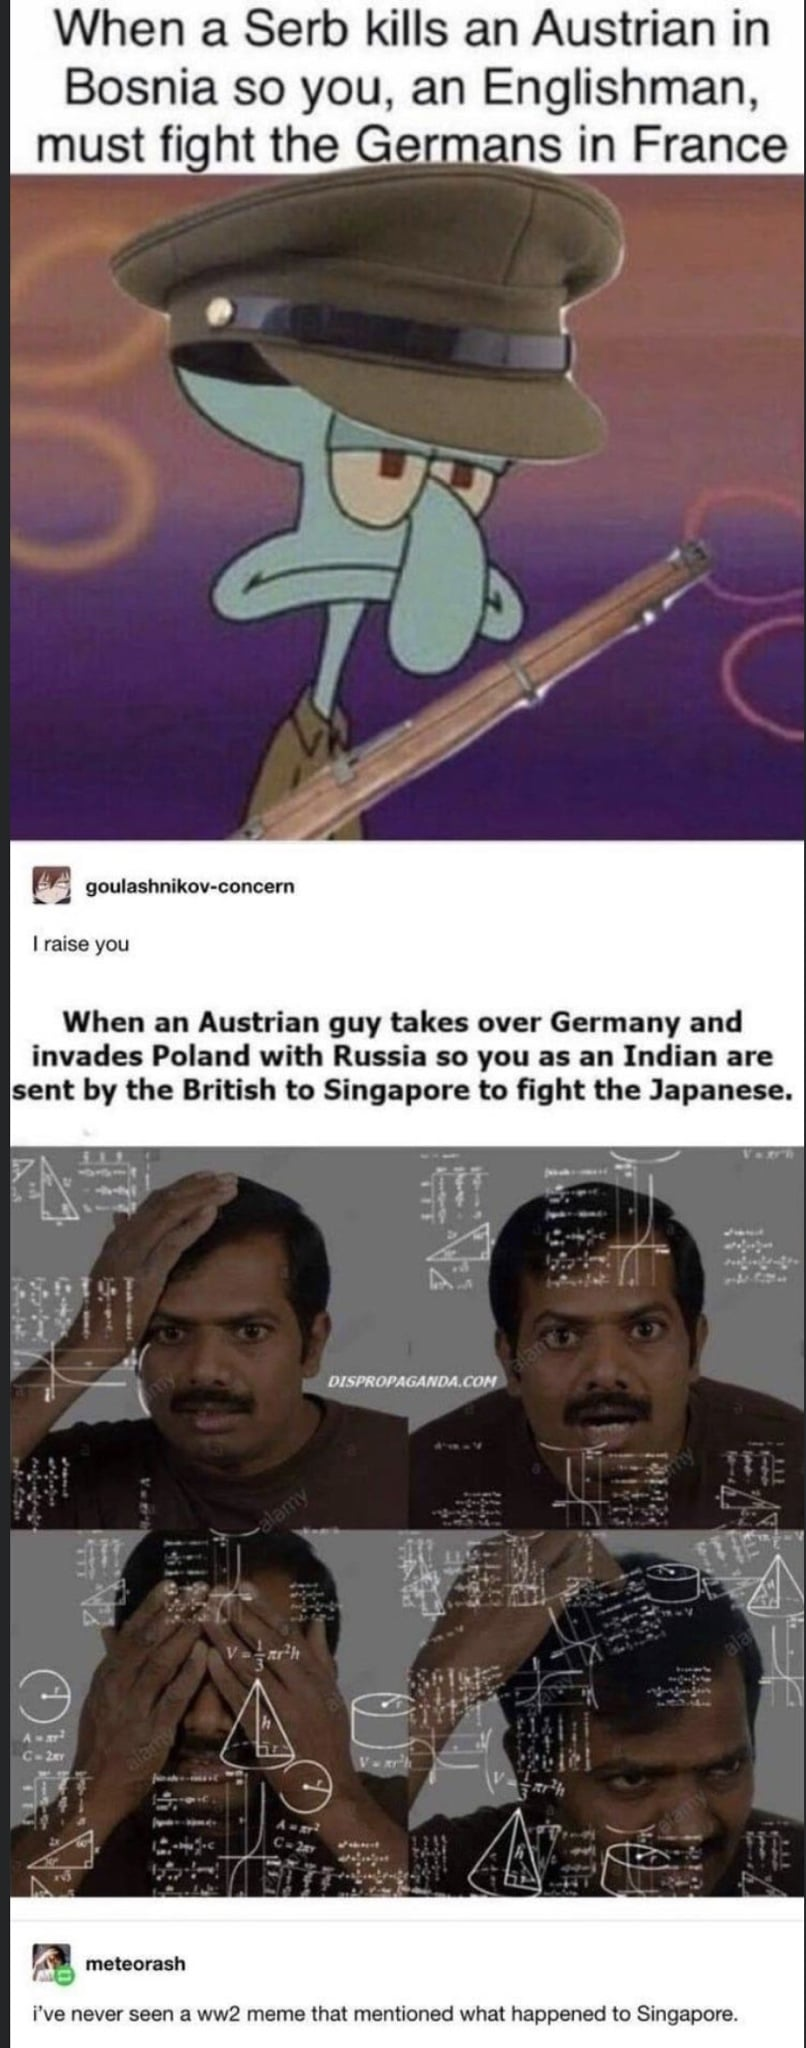 Spongebob, Singapore, Japanese, Indian, Germany, Poland Spongebob Memes Spongebob, Singapore, Japanese, Indian, Germany, Poland text: When a Serb kills an Austrian in Bosnia so you, an Englishman, must fight the Ger ans in France goulashnikov-concern I raise you When an Austrian guy takes over Germany and invades Poland with Russia so you as an Indian are sent by the British to Singapore to fight the Japanese. i've never seen a ww2 meme that mentioned what happened to Singapore.